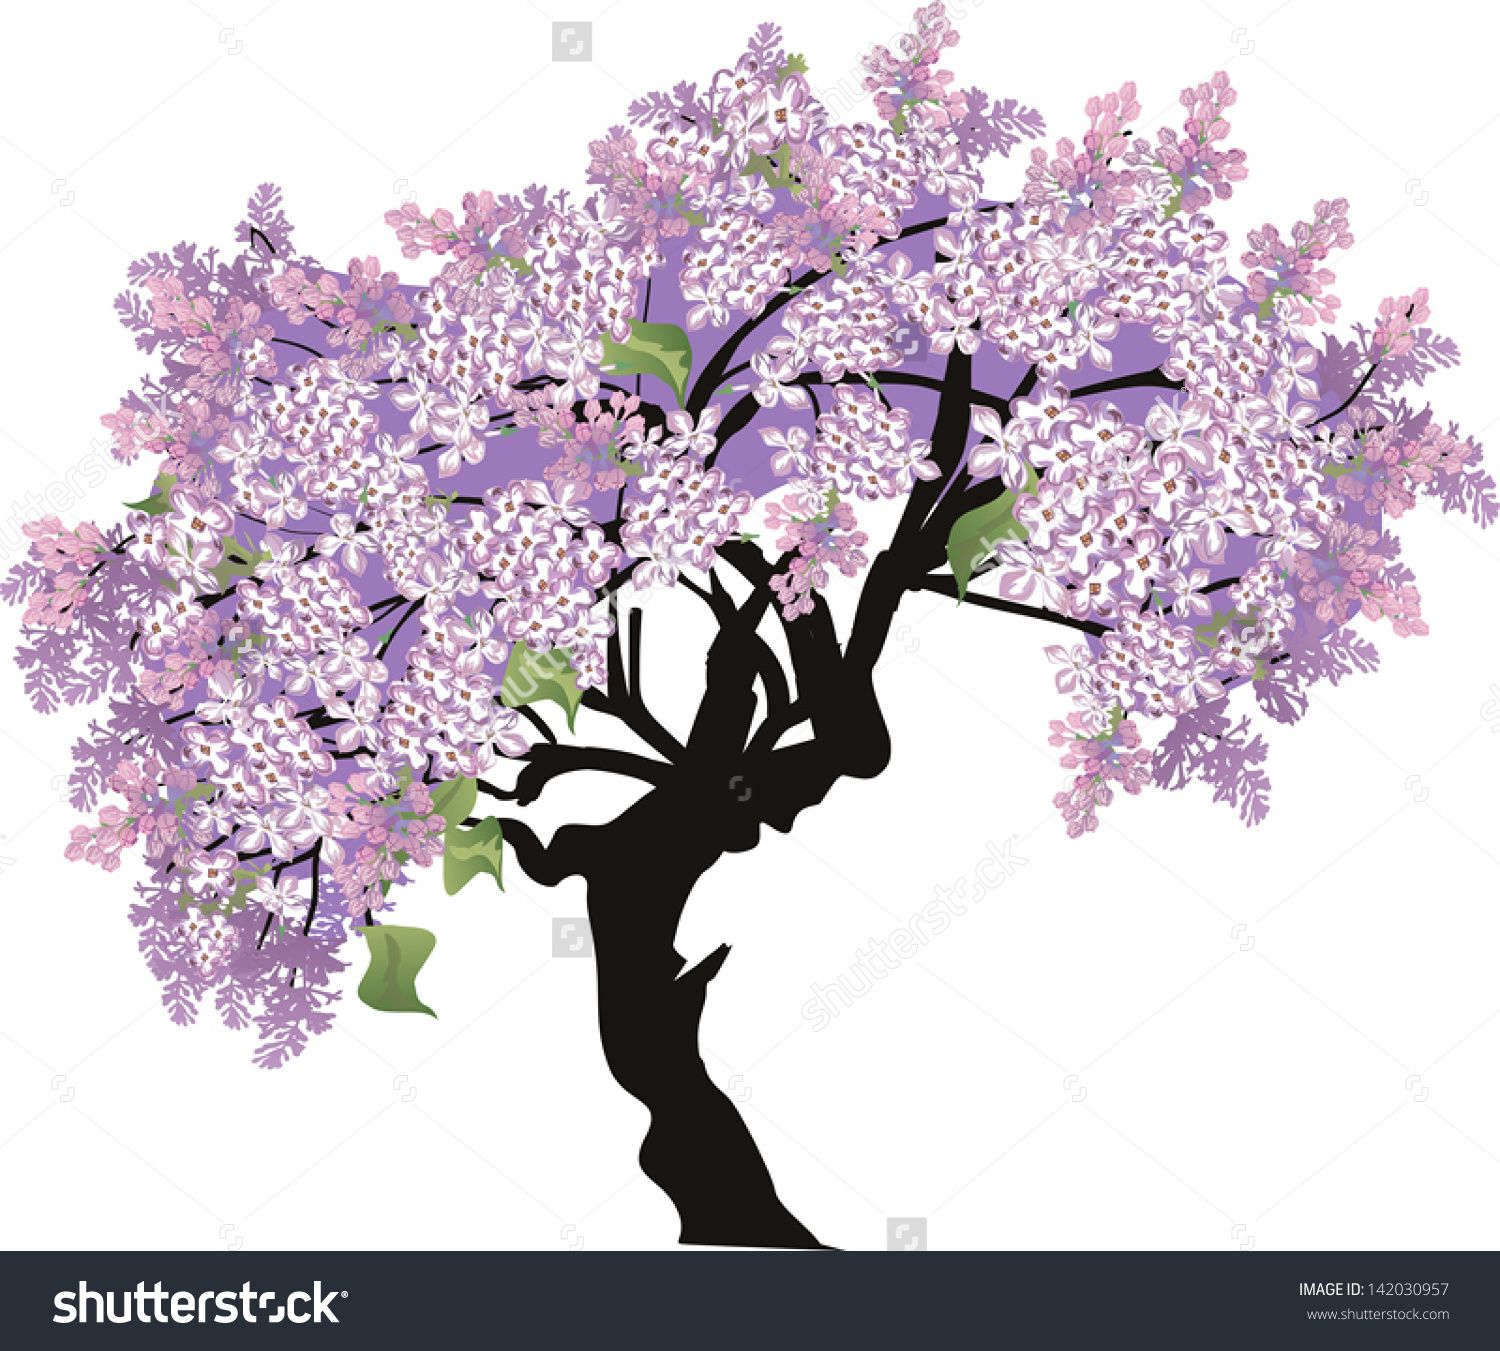 clipart library download Lilac Tree Stock Photos